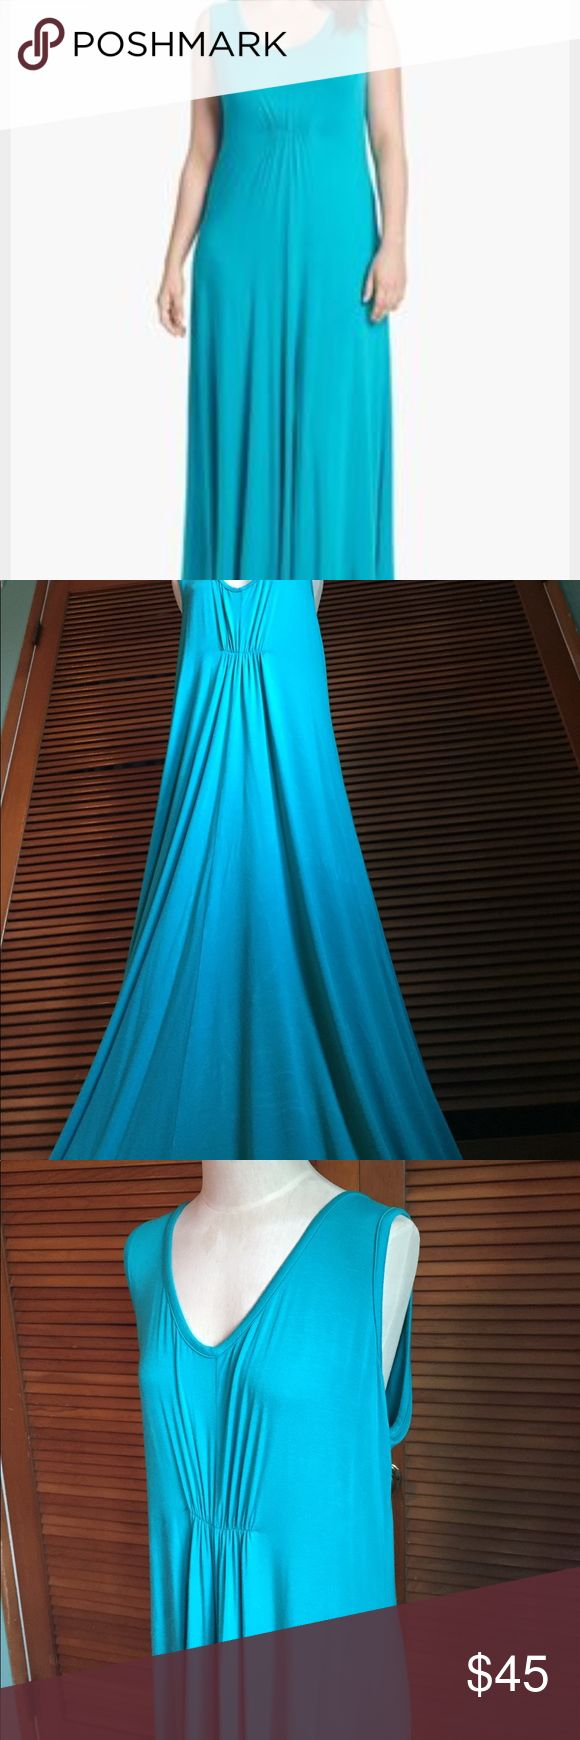 New! LAmade Teal green Maxi dress Beautiful LAmade teal green color in a flowing maxi dress that is so comfortable! Color is Palm green, size 1X from Nordstrom. Stretchy! This will make your green or blue eyes pop! There are a few crease marks from being stored not quite sure how to remove these. One tiny spot(see pics) not really noticeable but wanted to mention. Material feels like a soft jersey mix. Very flattering, versatile, could also be a maternity dress because of its length and…